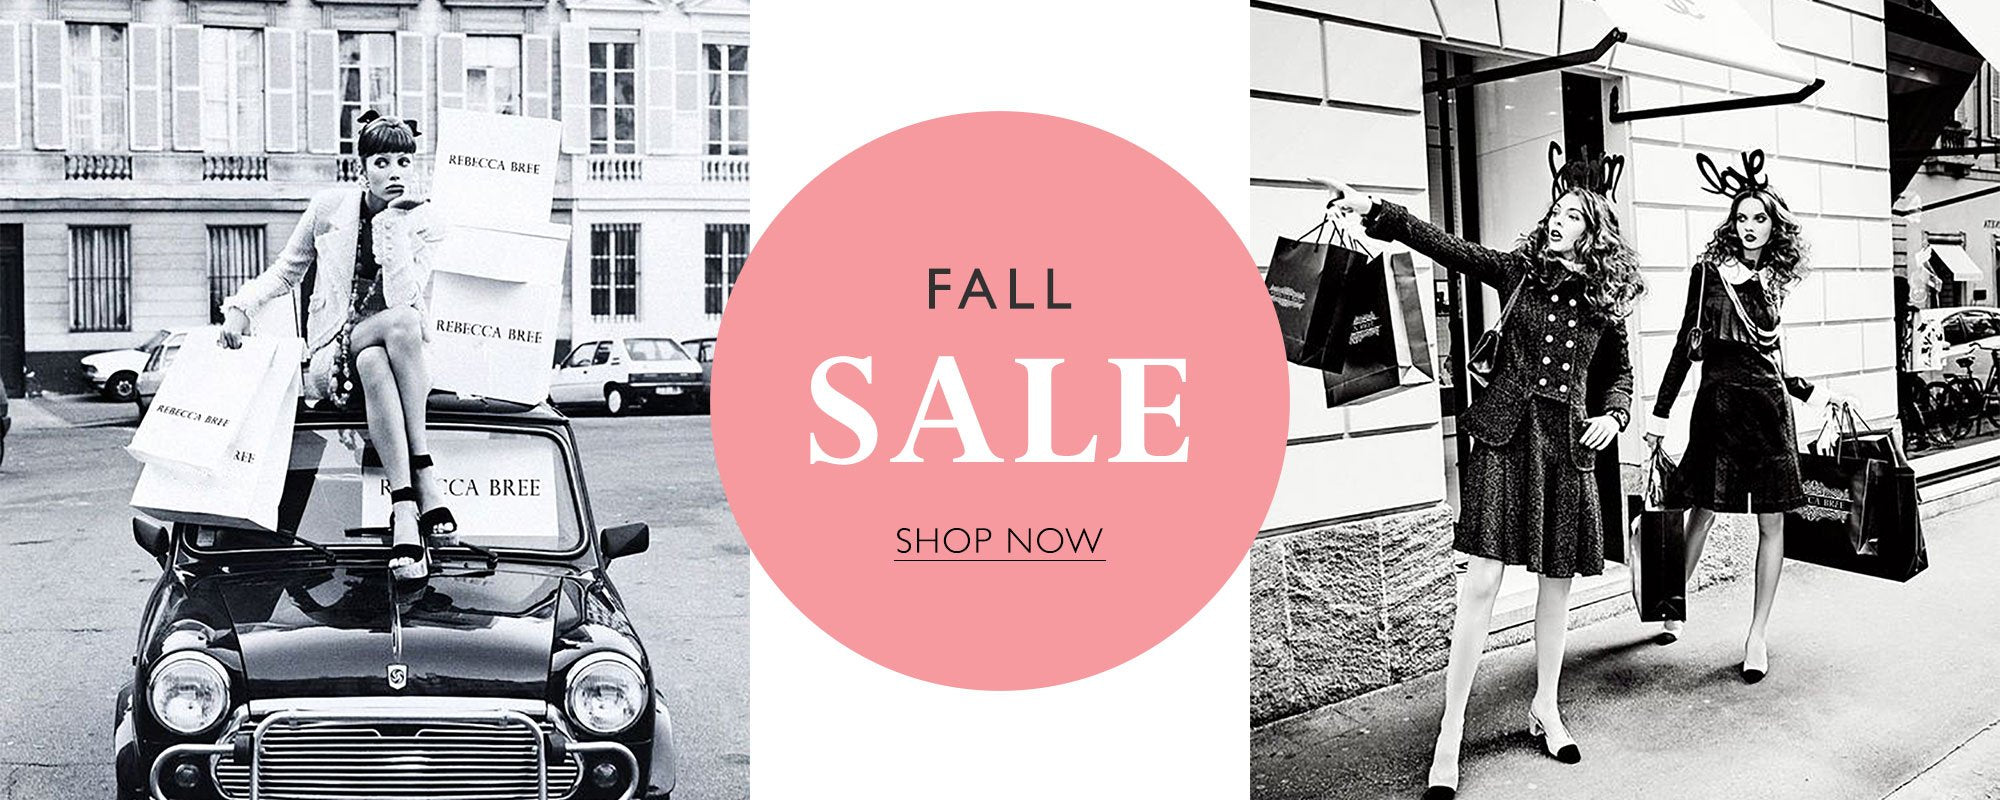 Shop our FALL SALE at Rebecca Bree boutique